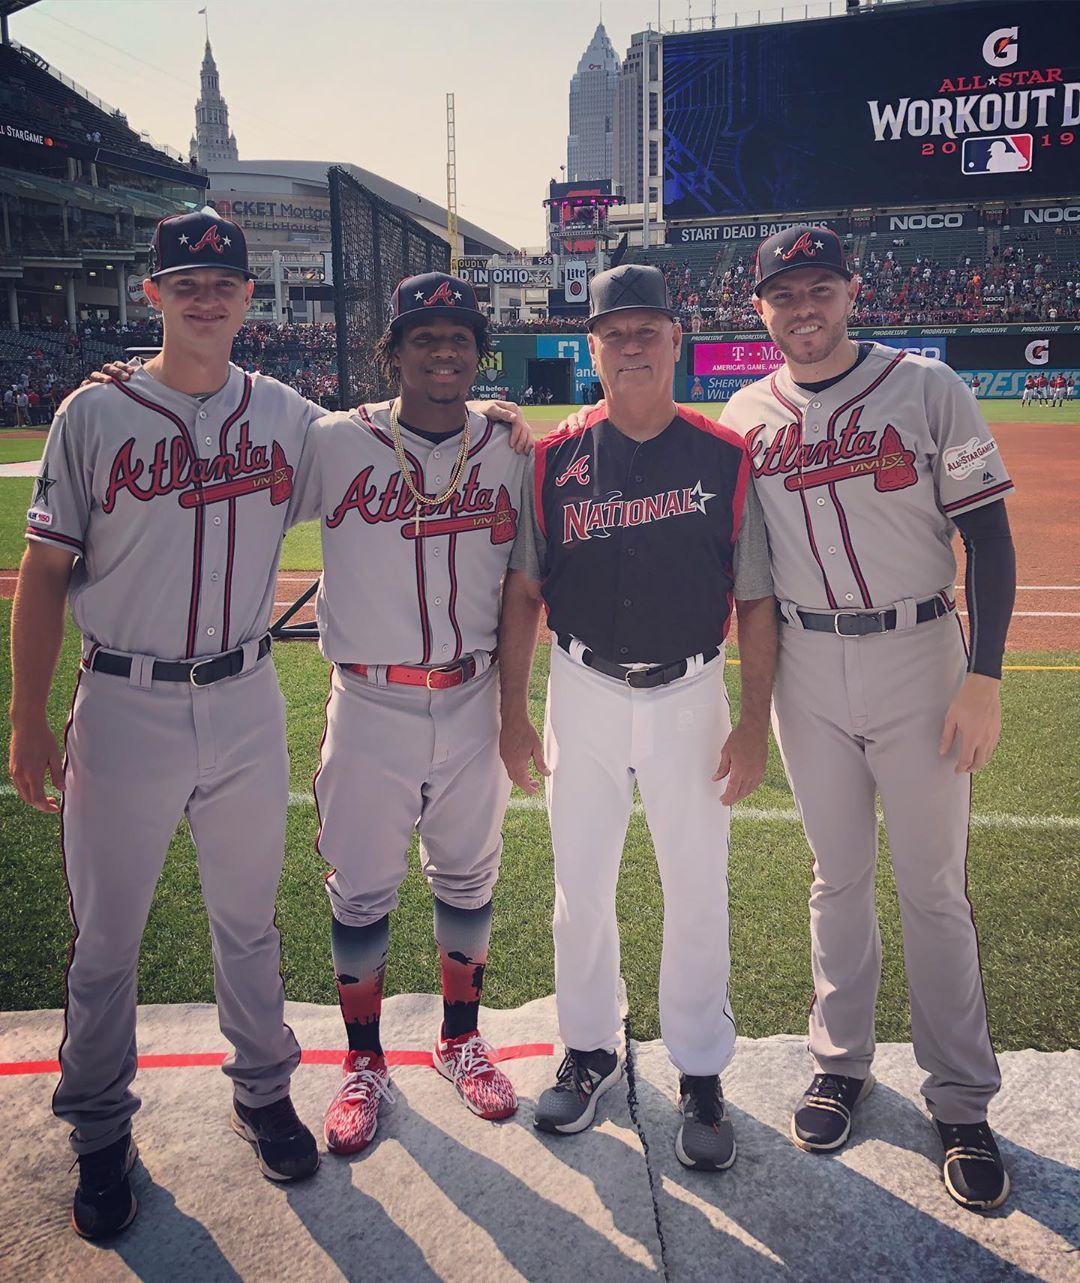 Atlanta Braves Baseball Atlanta Braves Braves